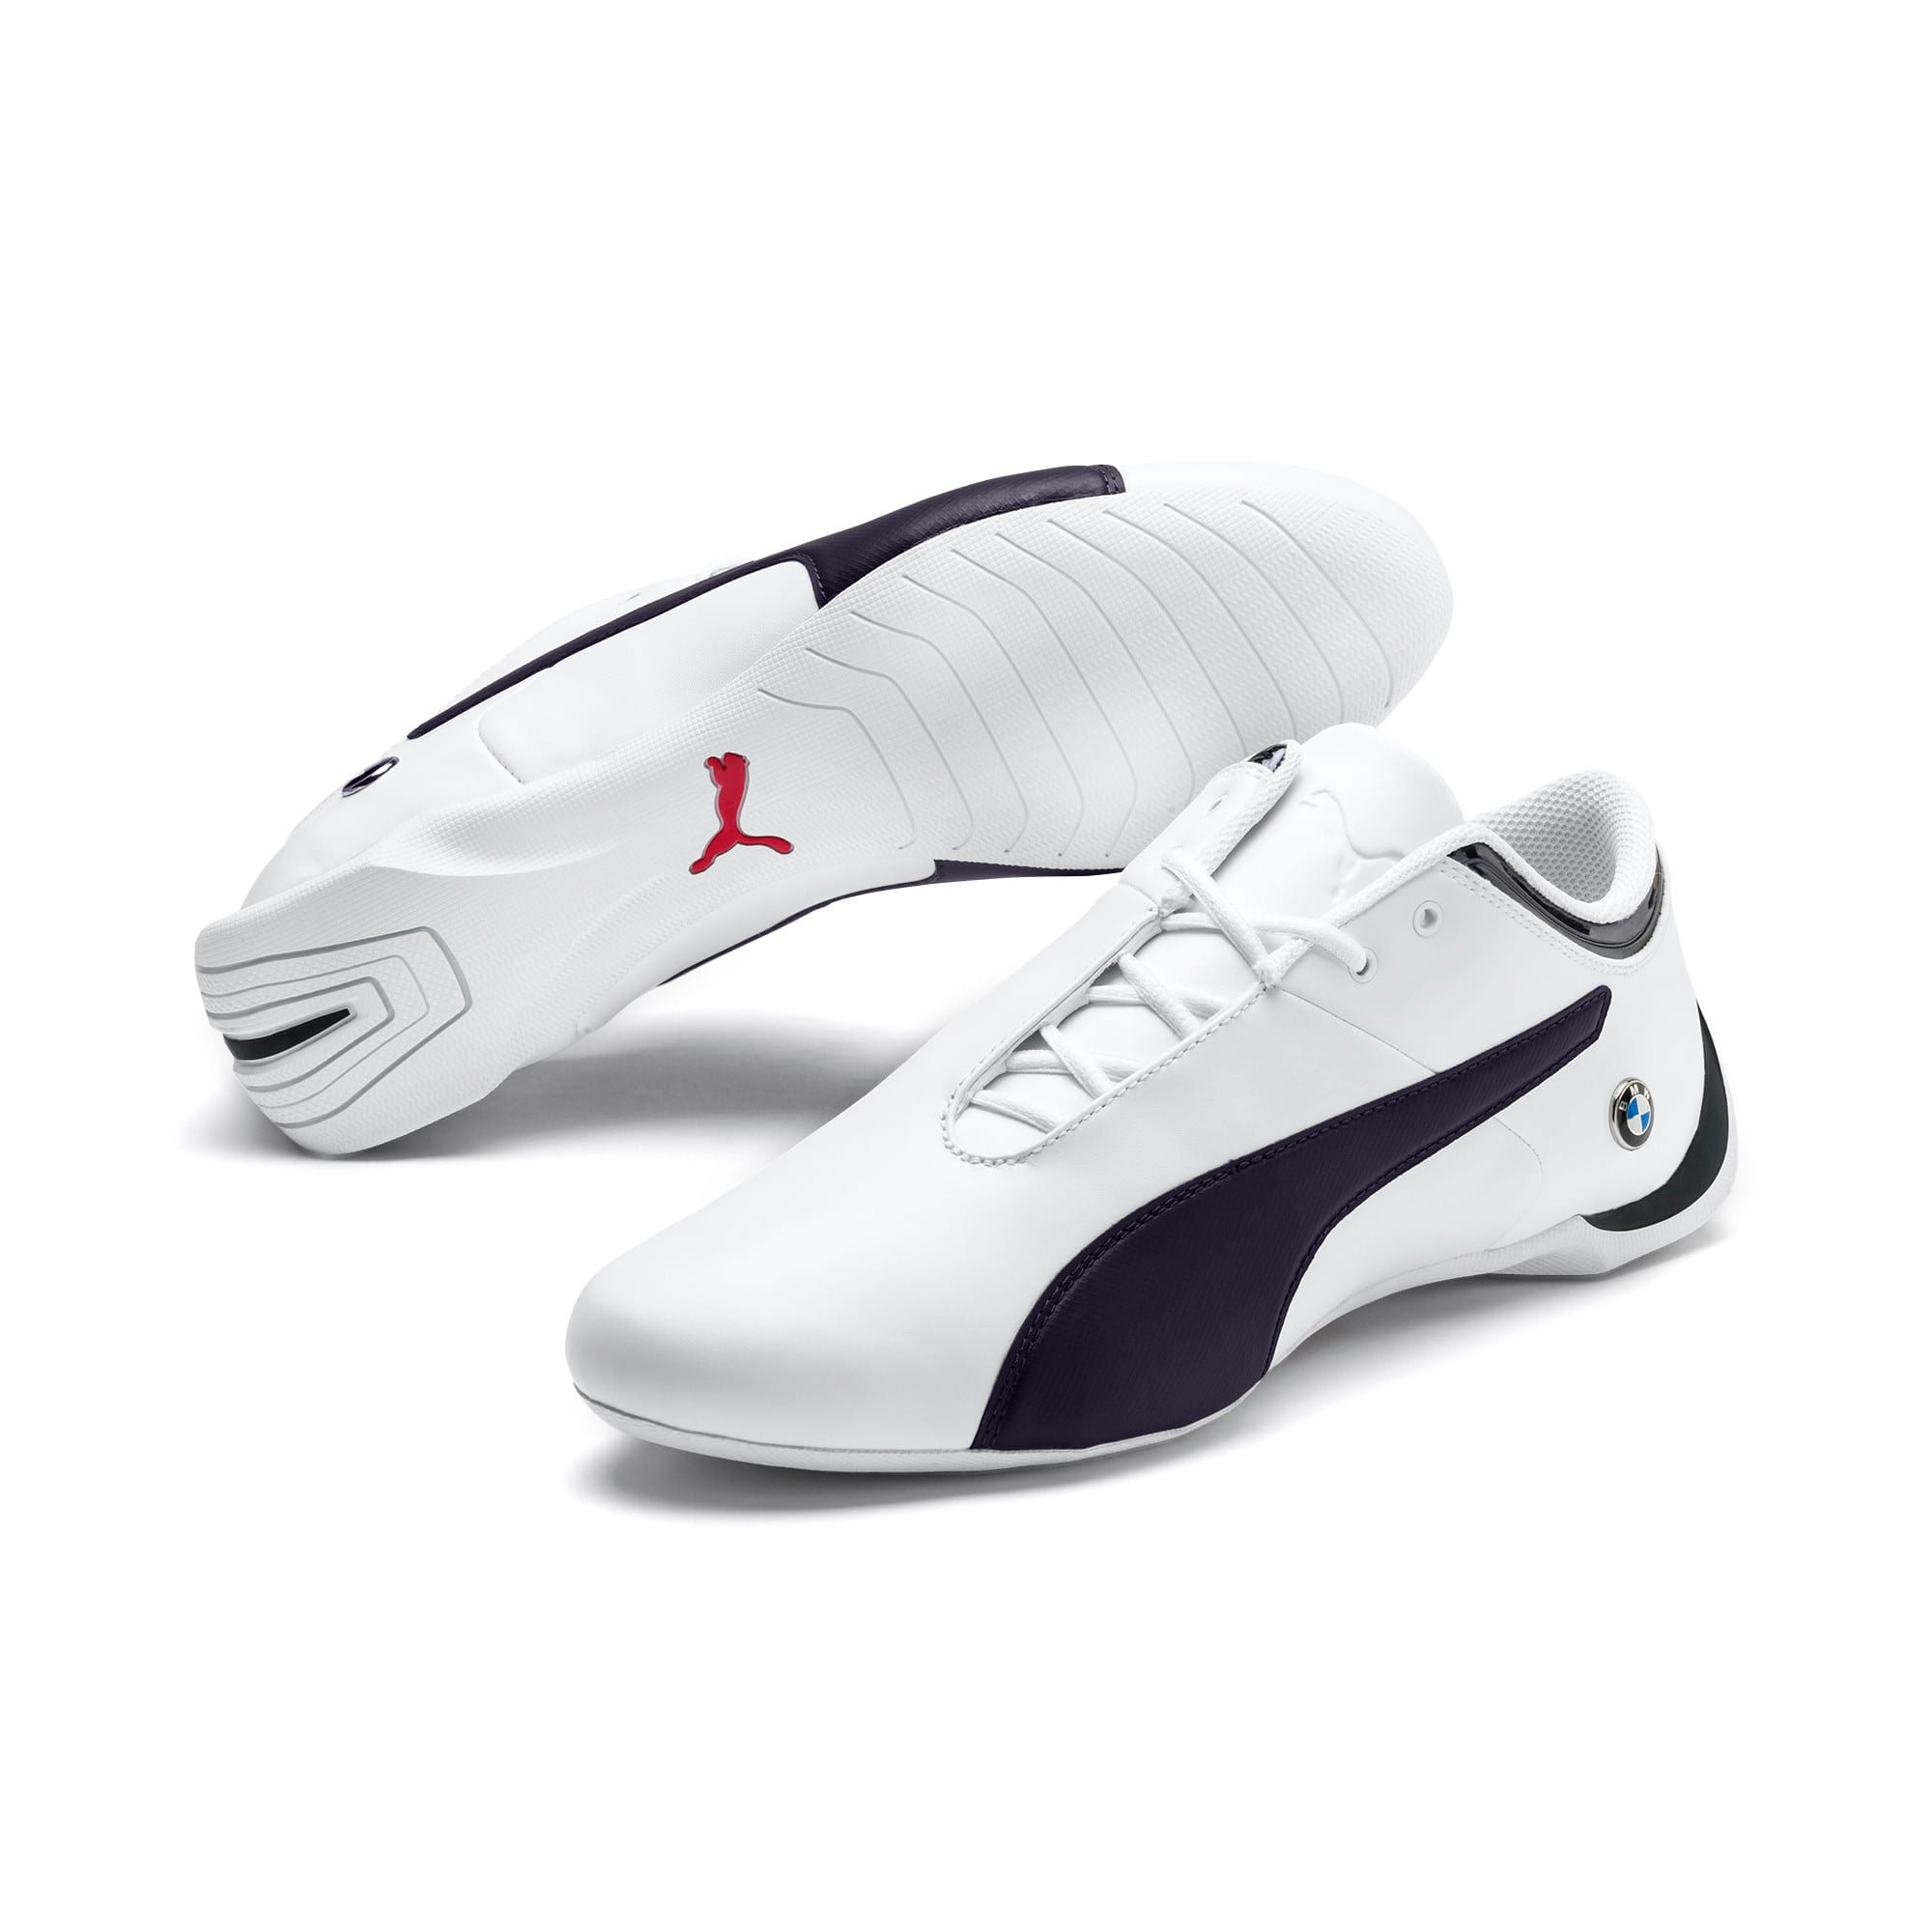 Thumbnail 2 of Scarpe da ginnastica BMW Motorsport Future Cat, Puma White-Team Blue, medium